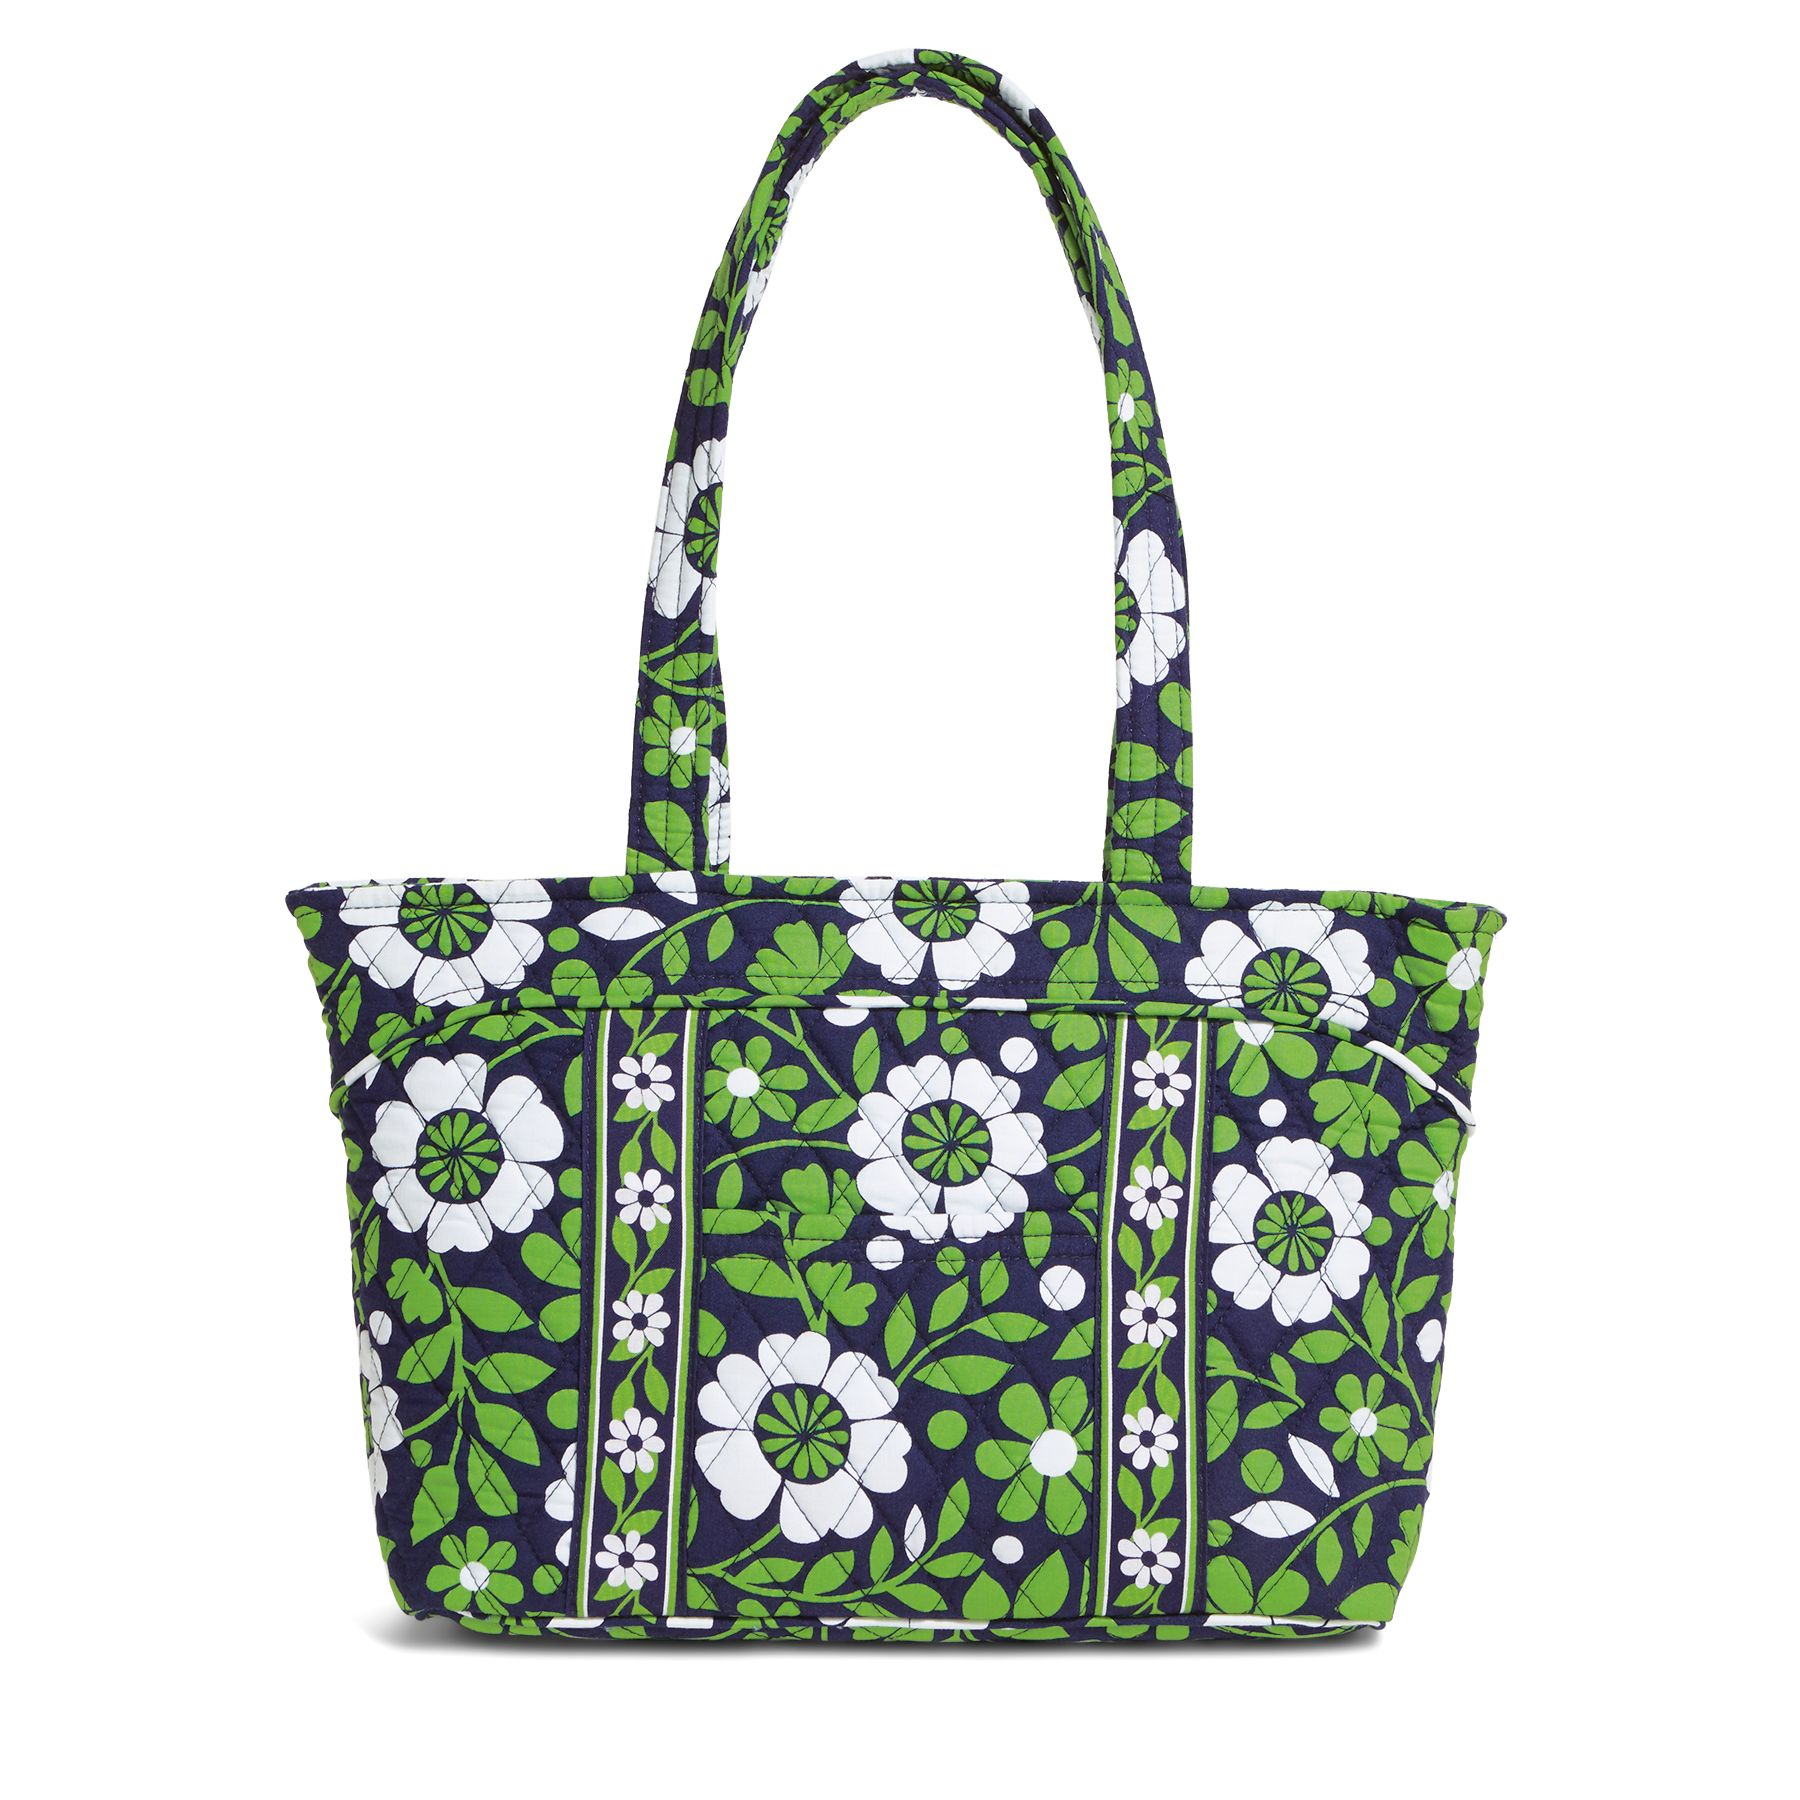 Vera Bradley Mandy Shoulder Bag in Lucky You